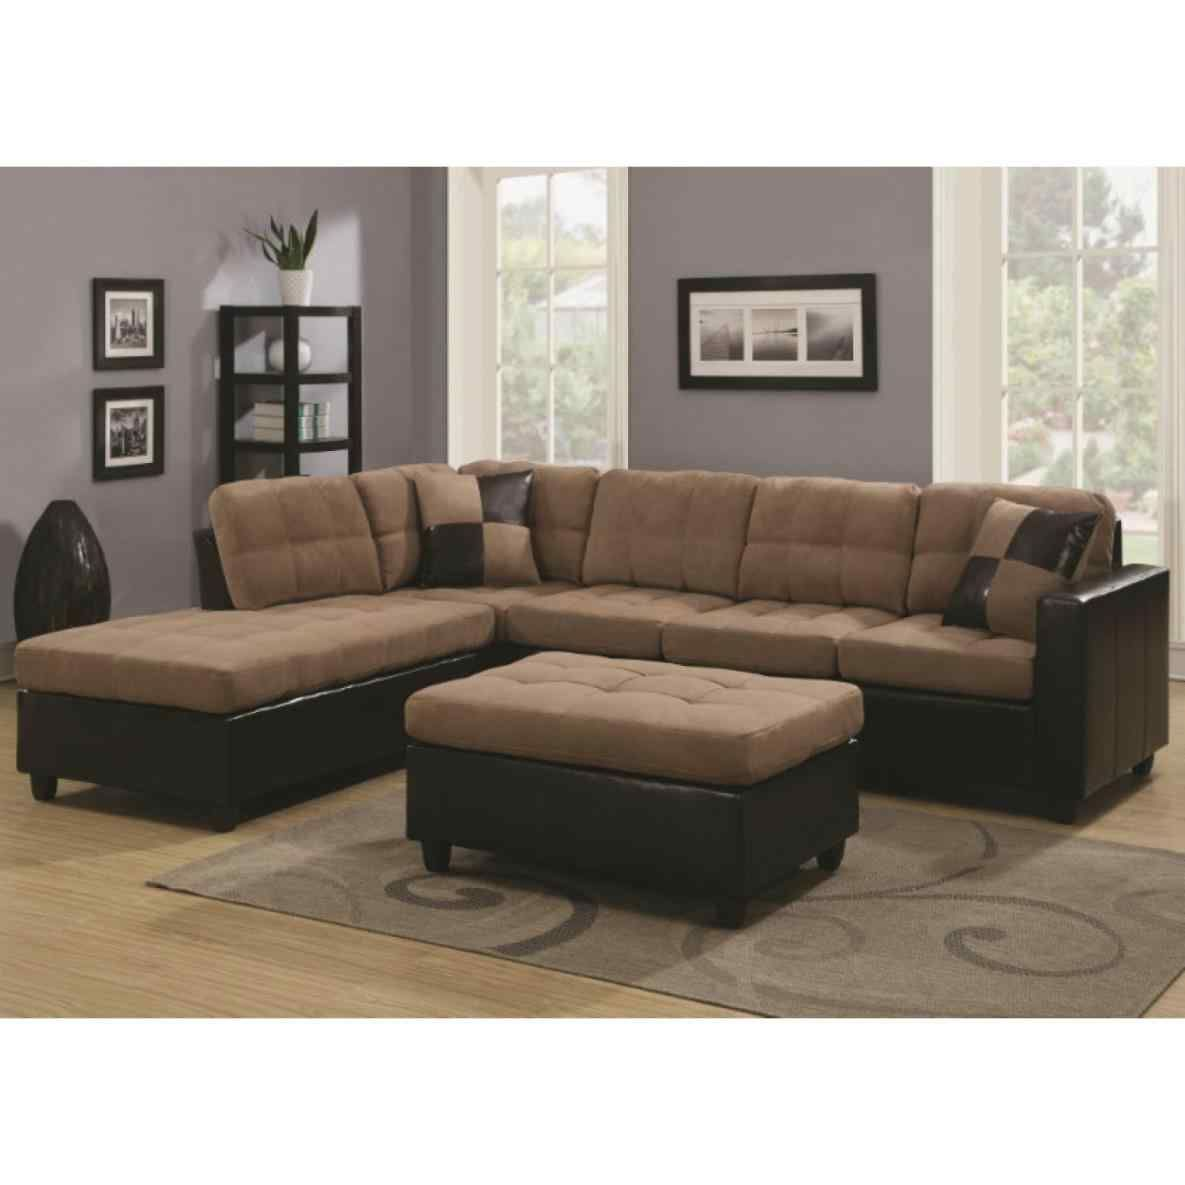 Roselawnlutheran For Nice Cheap Sectional Sofas Sale